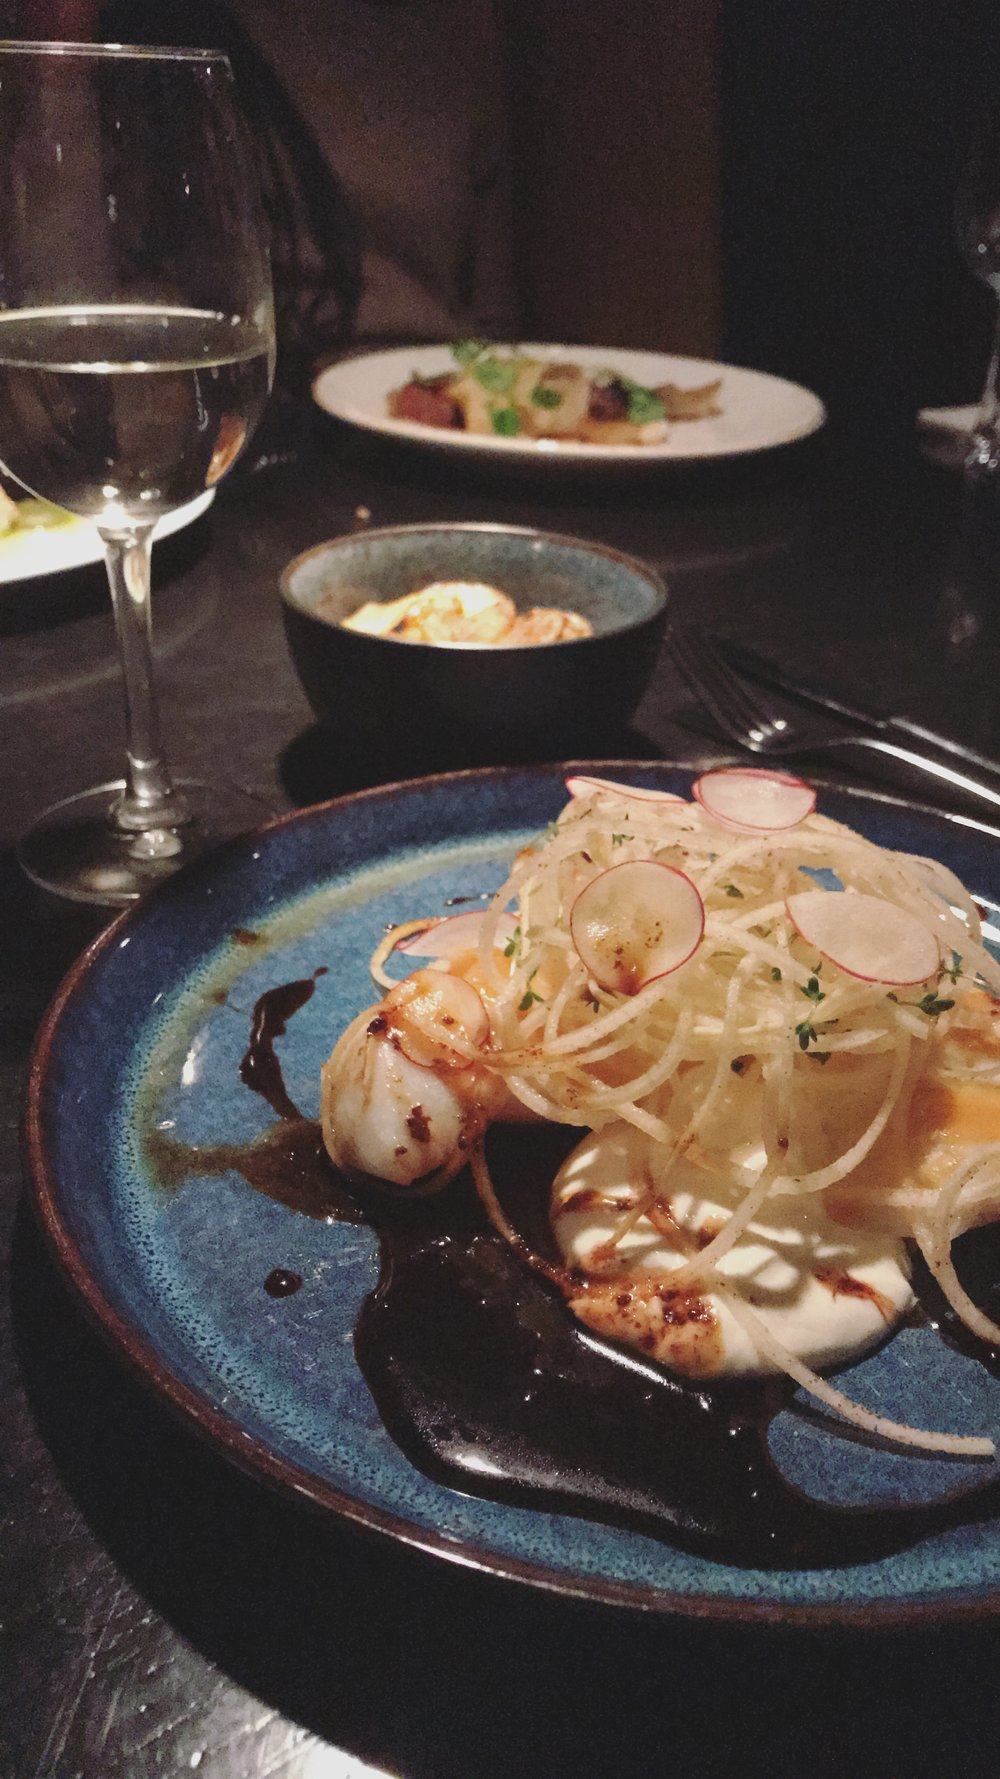 HONG KONG SOY-  sous-vide SALTED COD with SESAME sauce, filtered buttermilk & turnip spaghetti, radish & WASABI salad with a bowl of potatoes & pinot grigio on the side